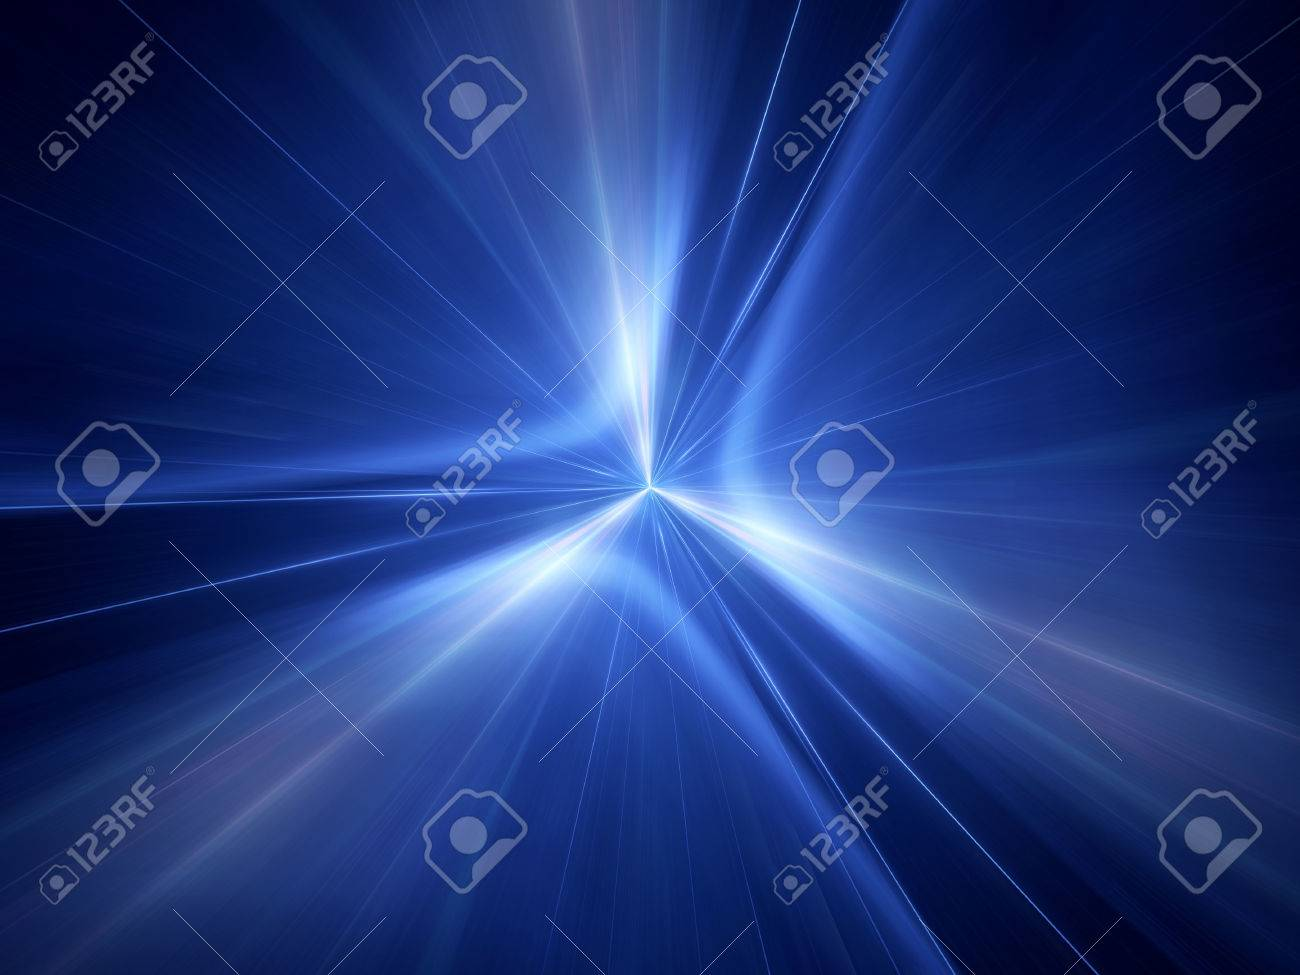 Blue glowing interstellar jump in space, computer generated abstract background - 60572678